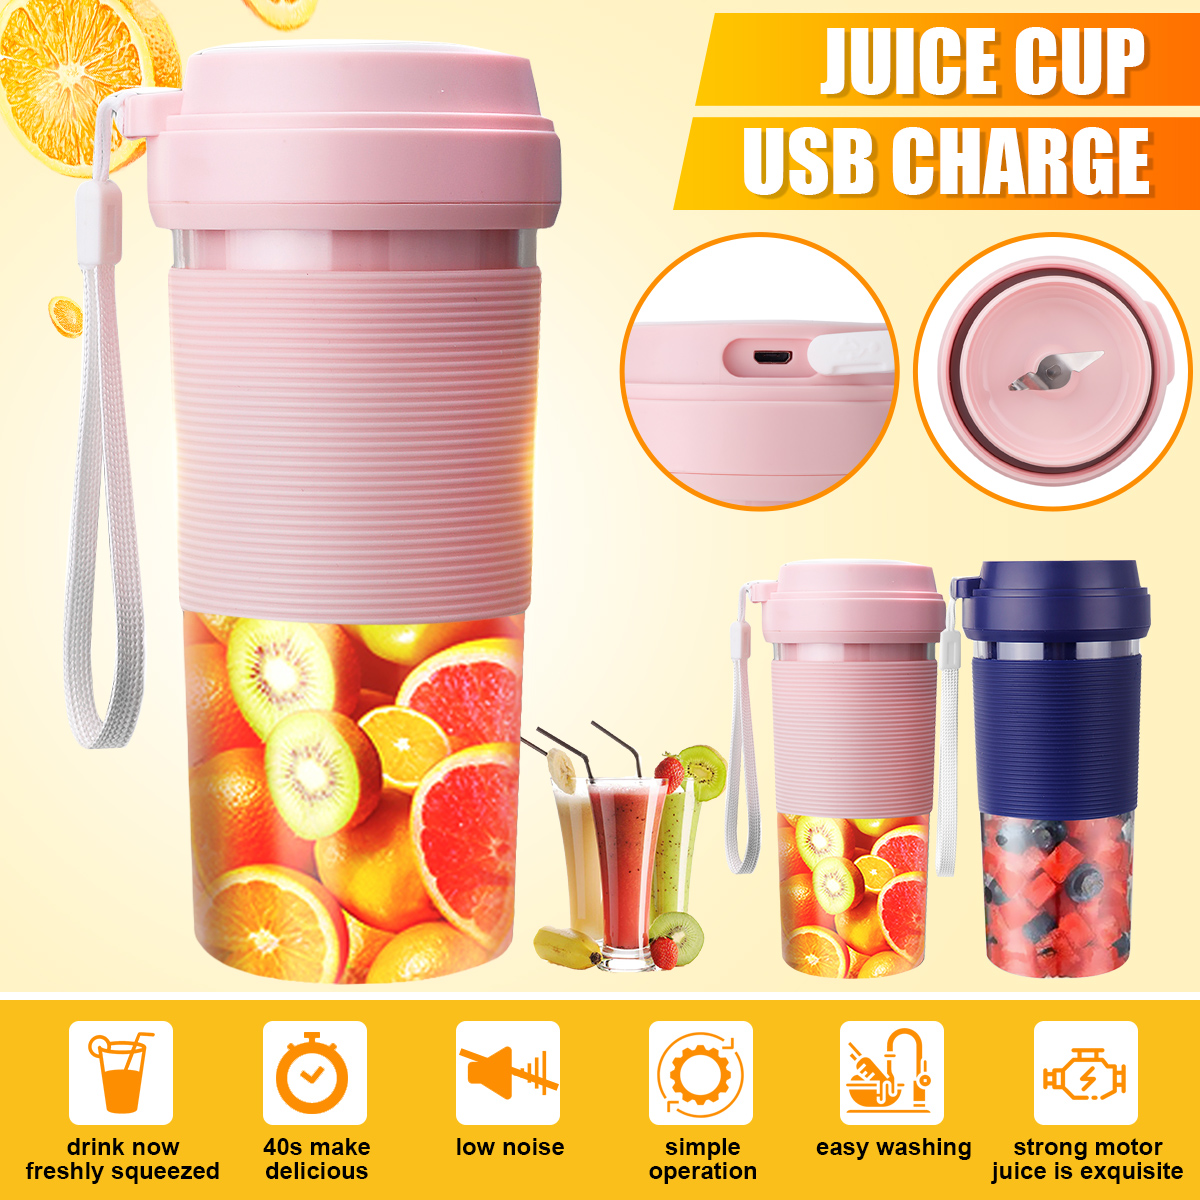 Portable Electric Juicer Small Fruit Cup Food-Blender Processor Mixer 400ML Mini USB Rechargable 40 Seconds Of Quick Juice Maker